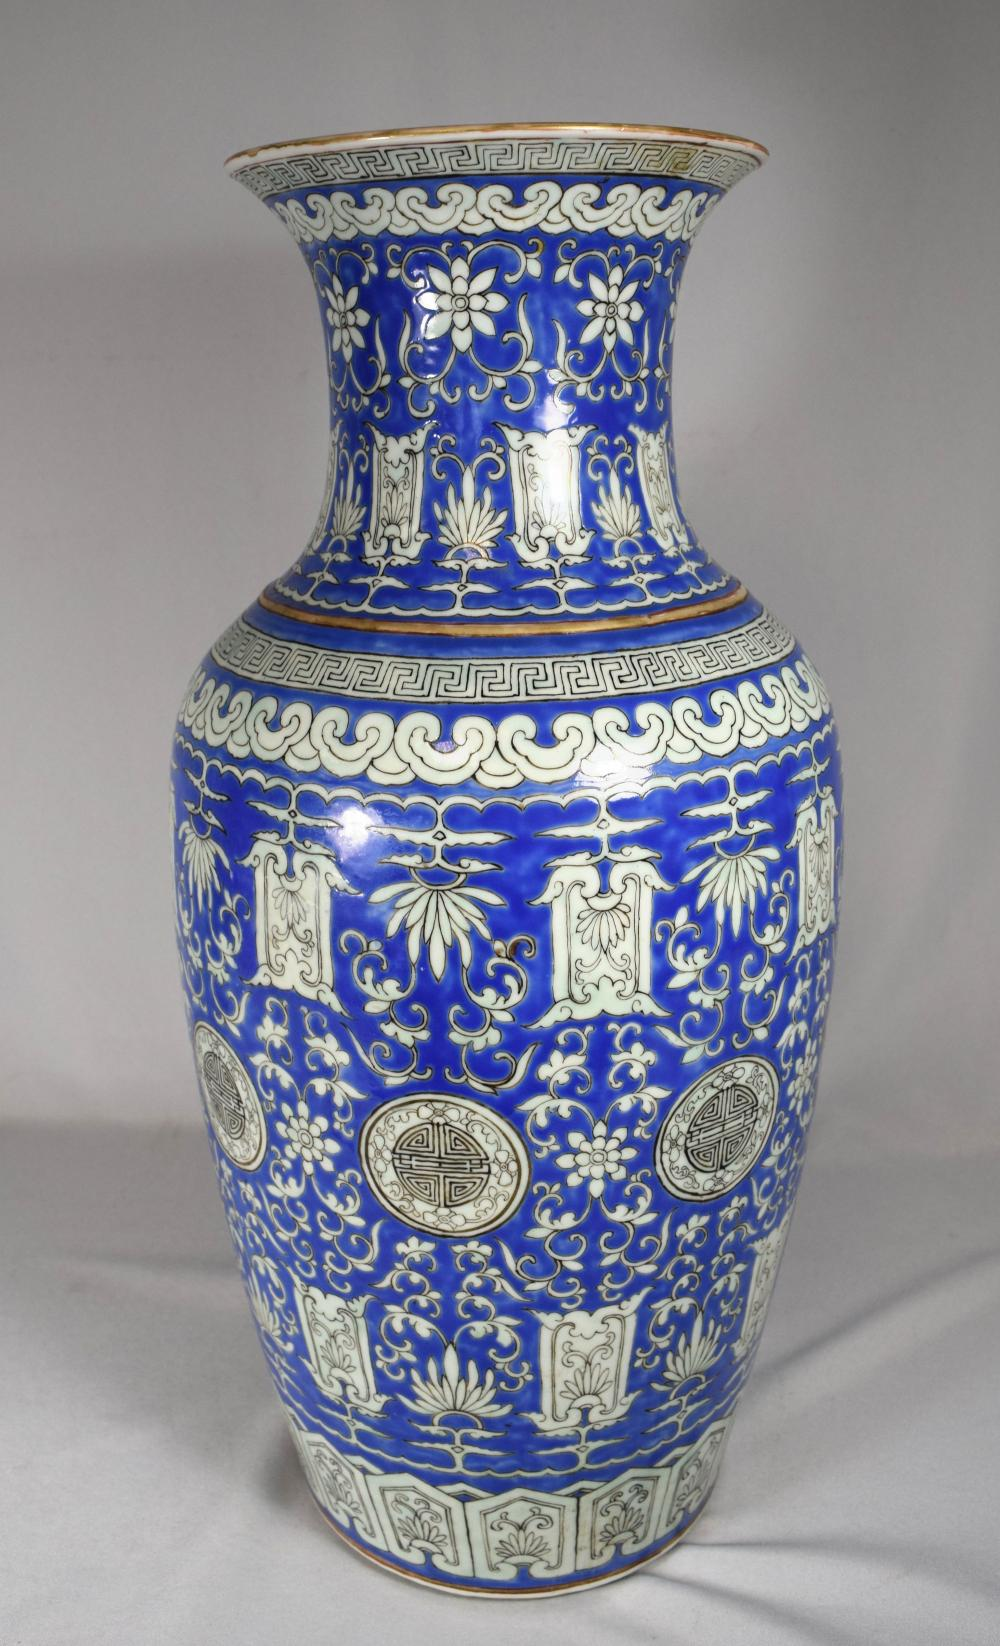 CHINESE BLUE & GRAY/WHITE FLOOR VASE: